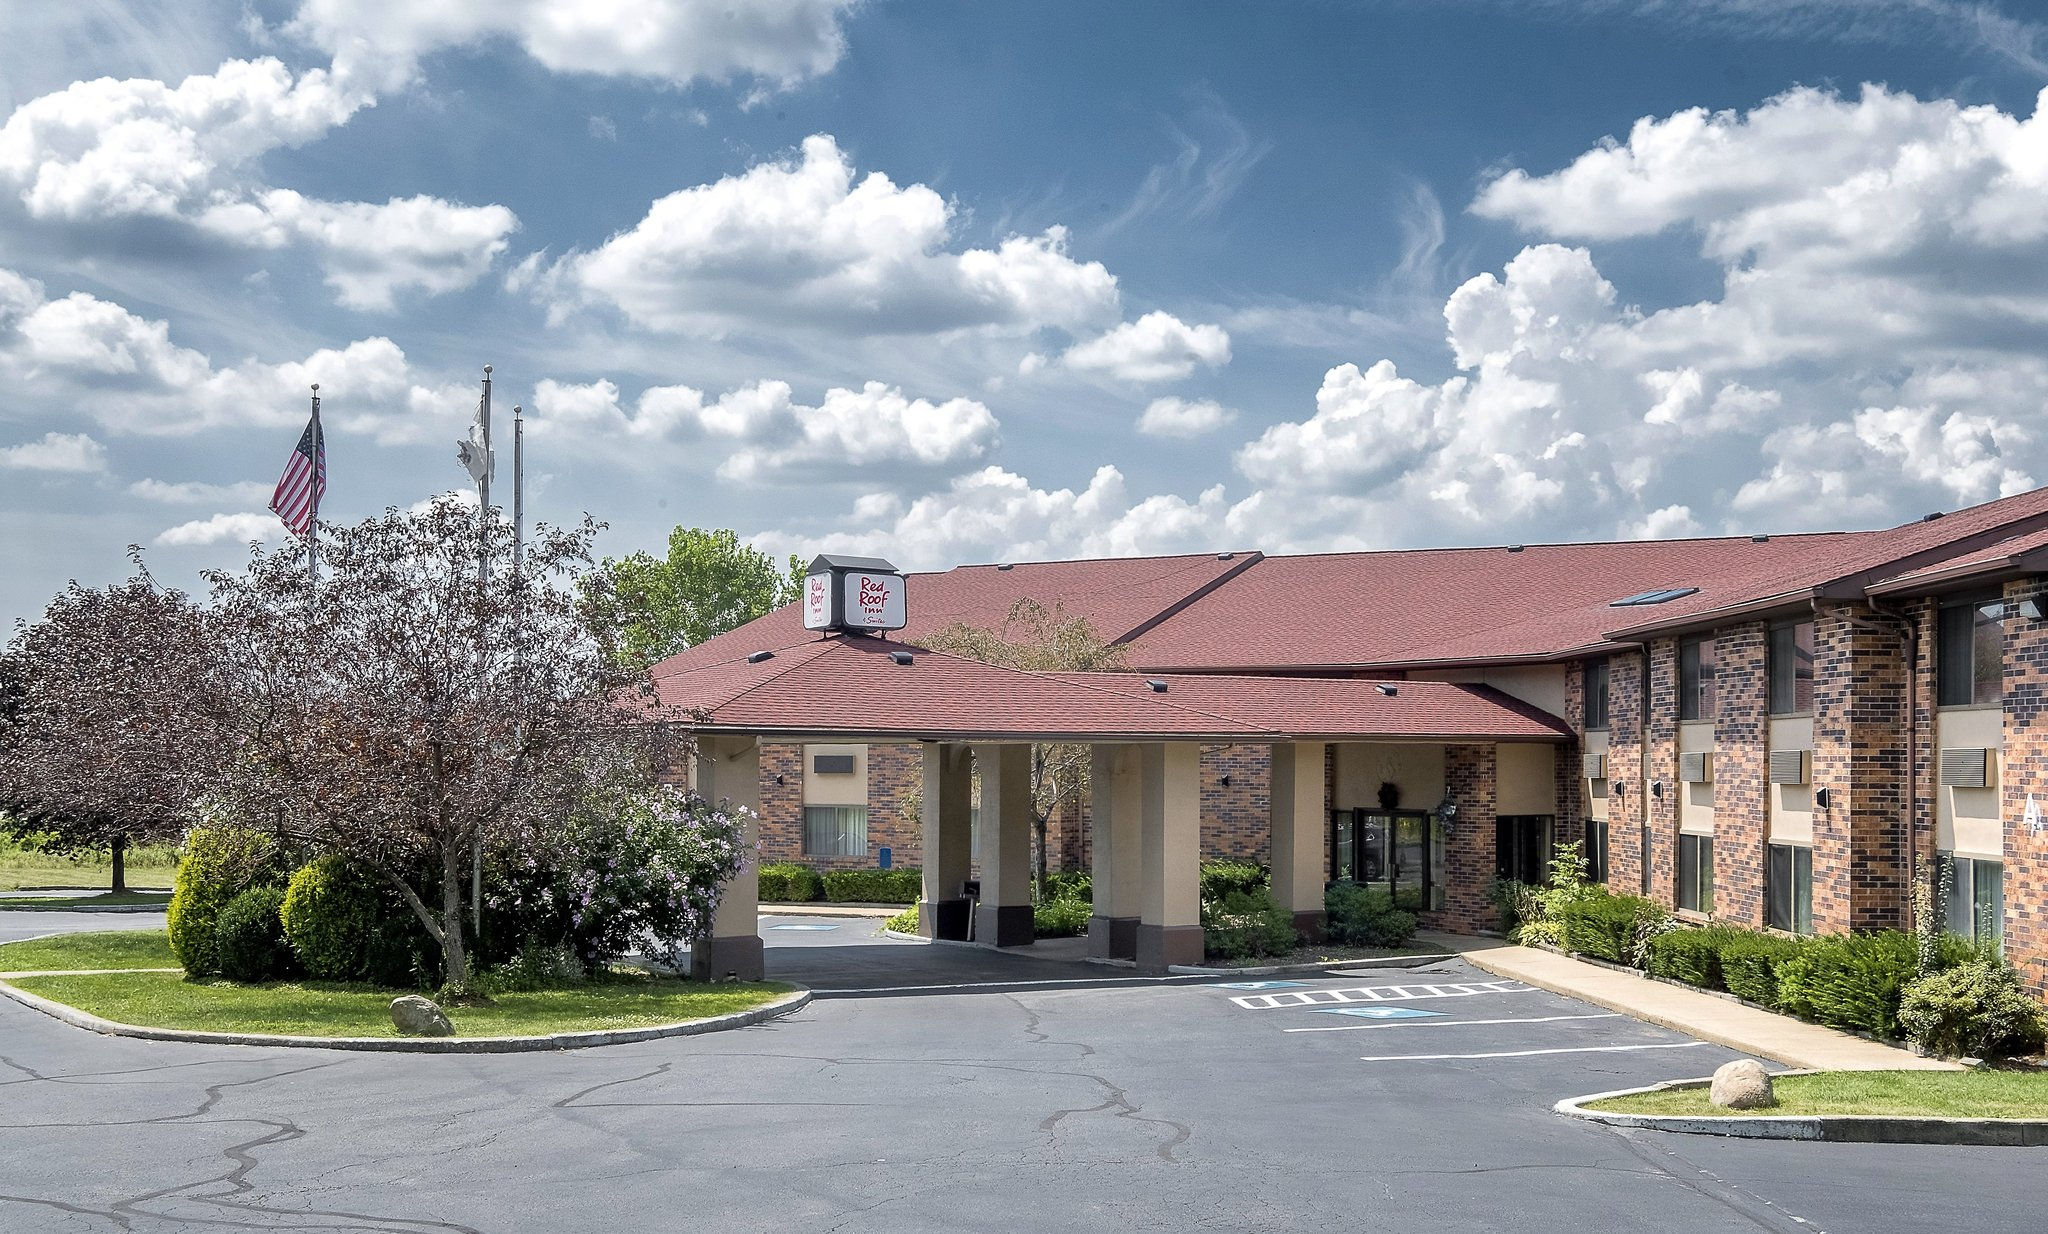 Red Roof Inn And Suites Hermitage